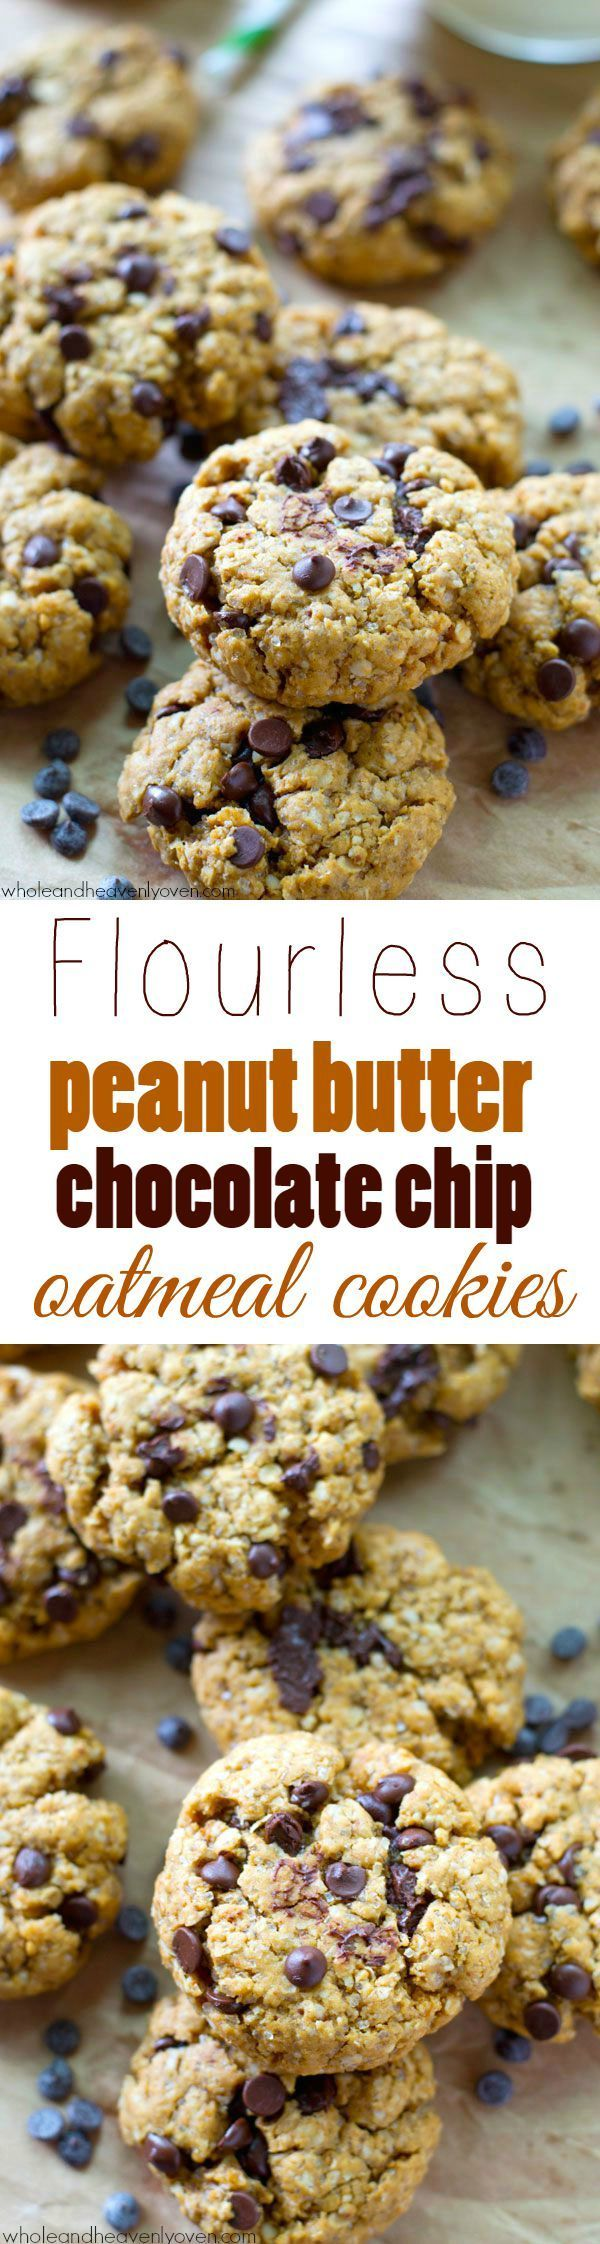 These jam-packed peanut butter chocolate chip cookies are so soft and ...